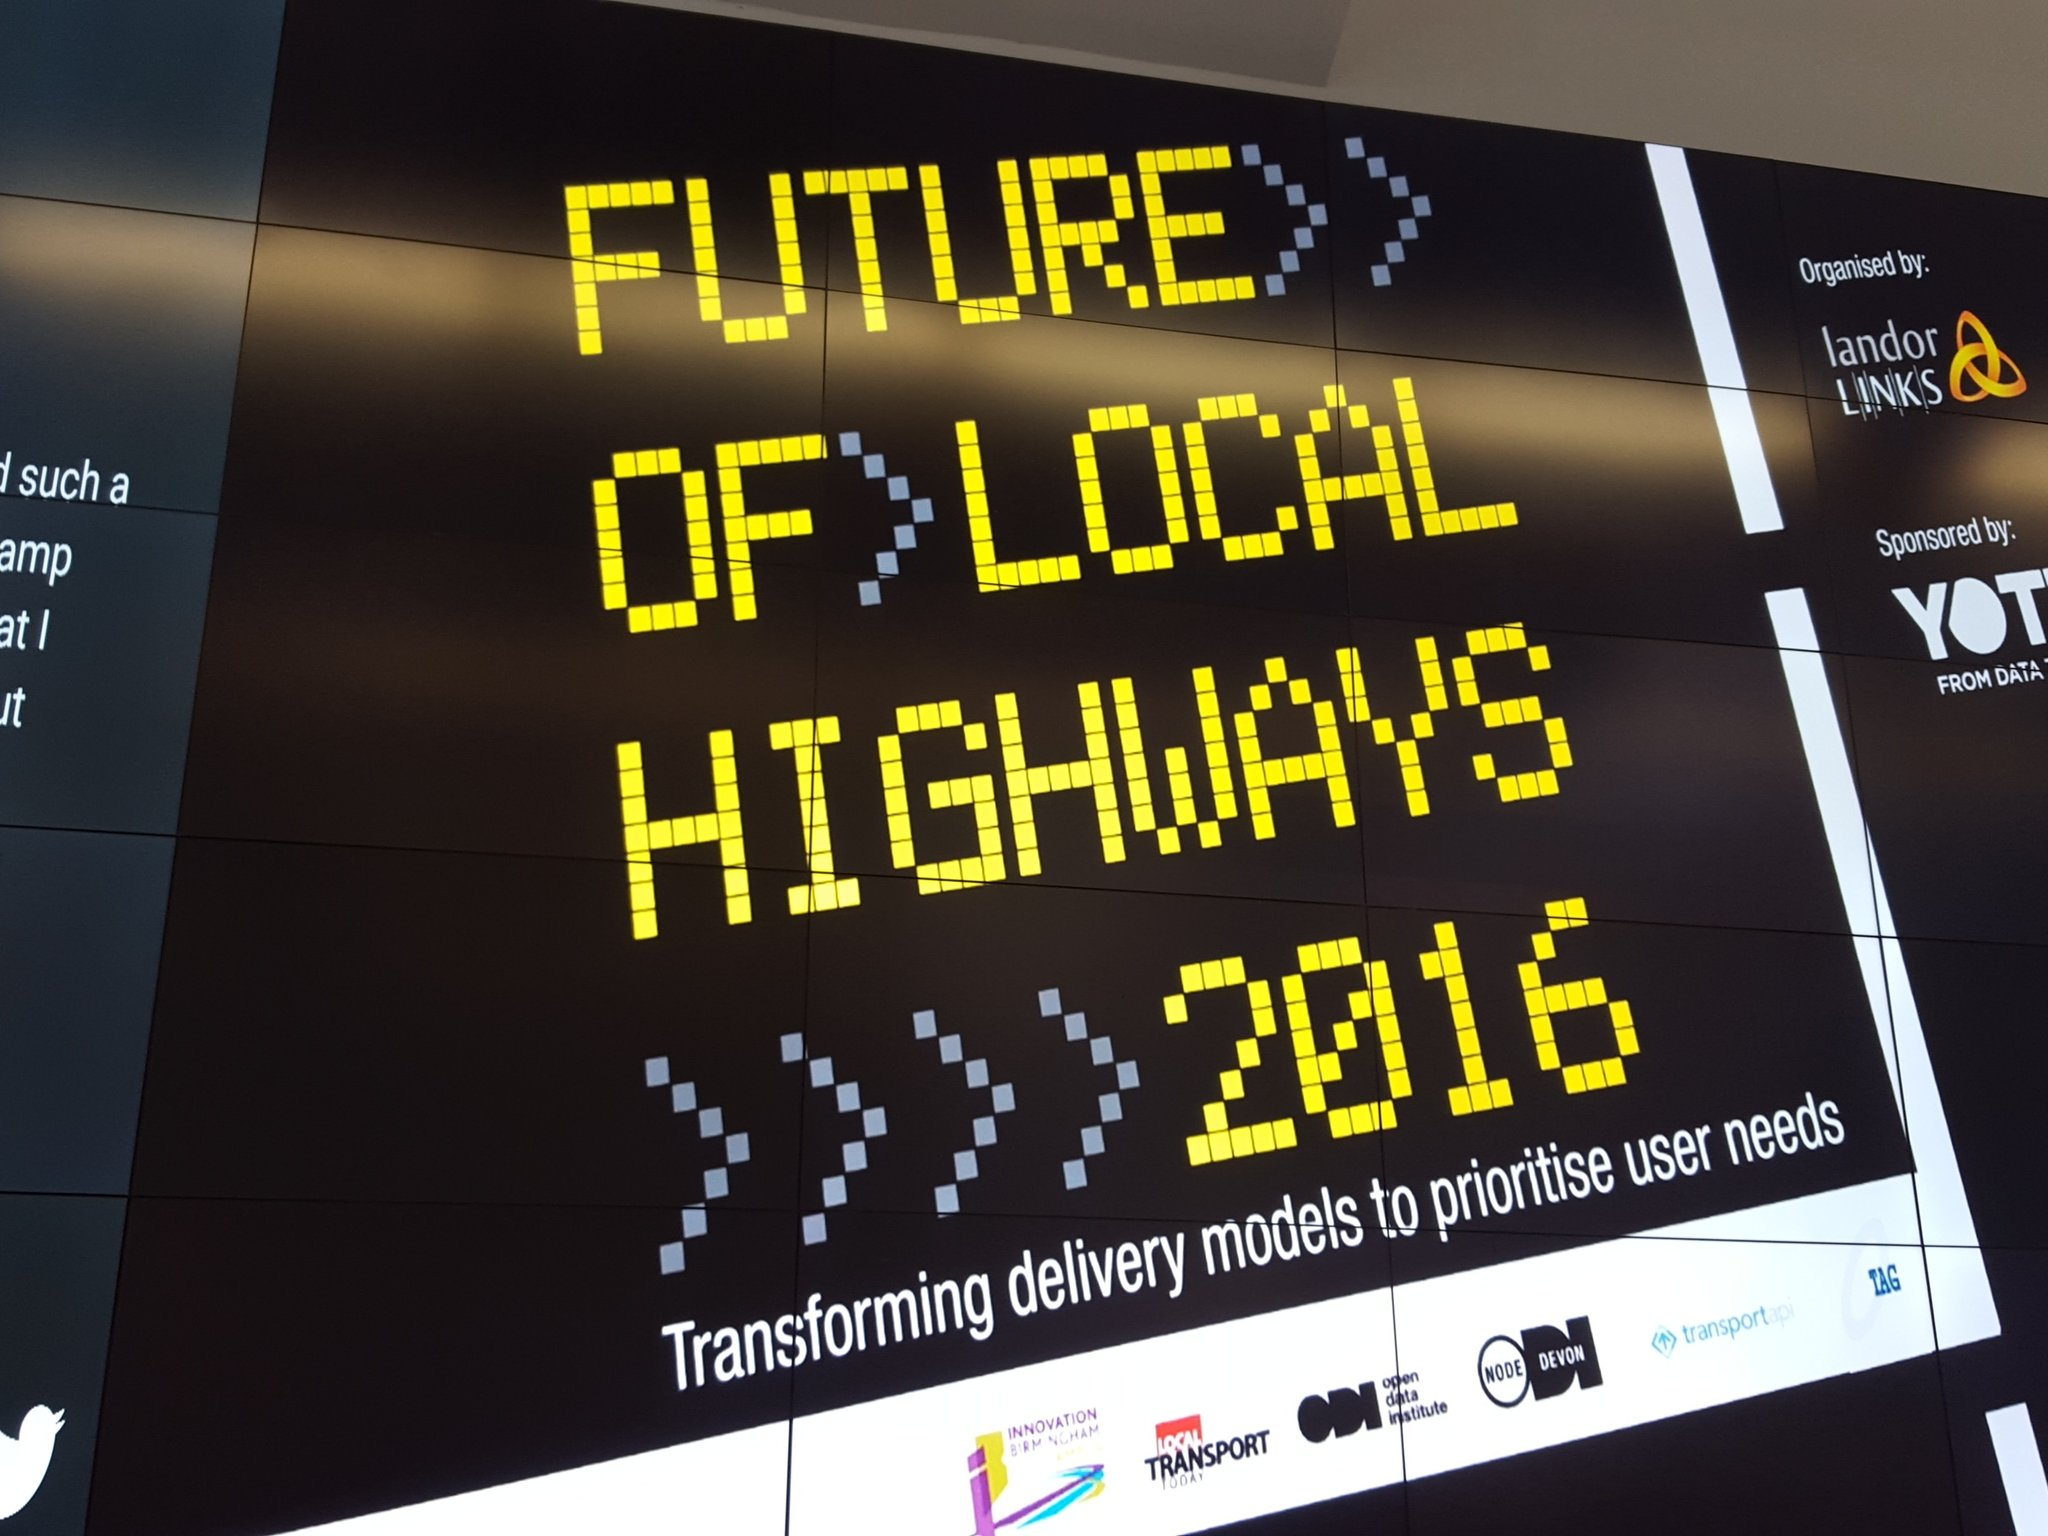 To iCentrum for #futurehighways to talk about transport data. Key meeting for understanding how data is disrupting https://t.co/BHR3JoIhQ1